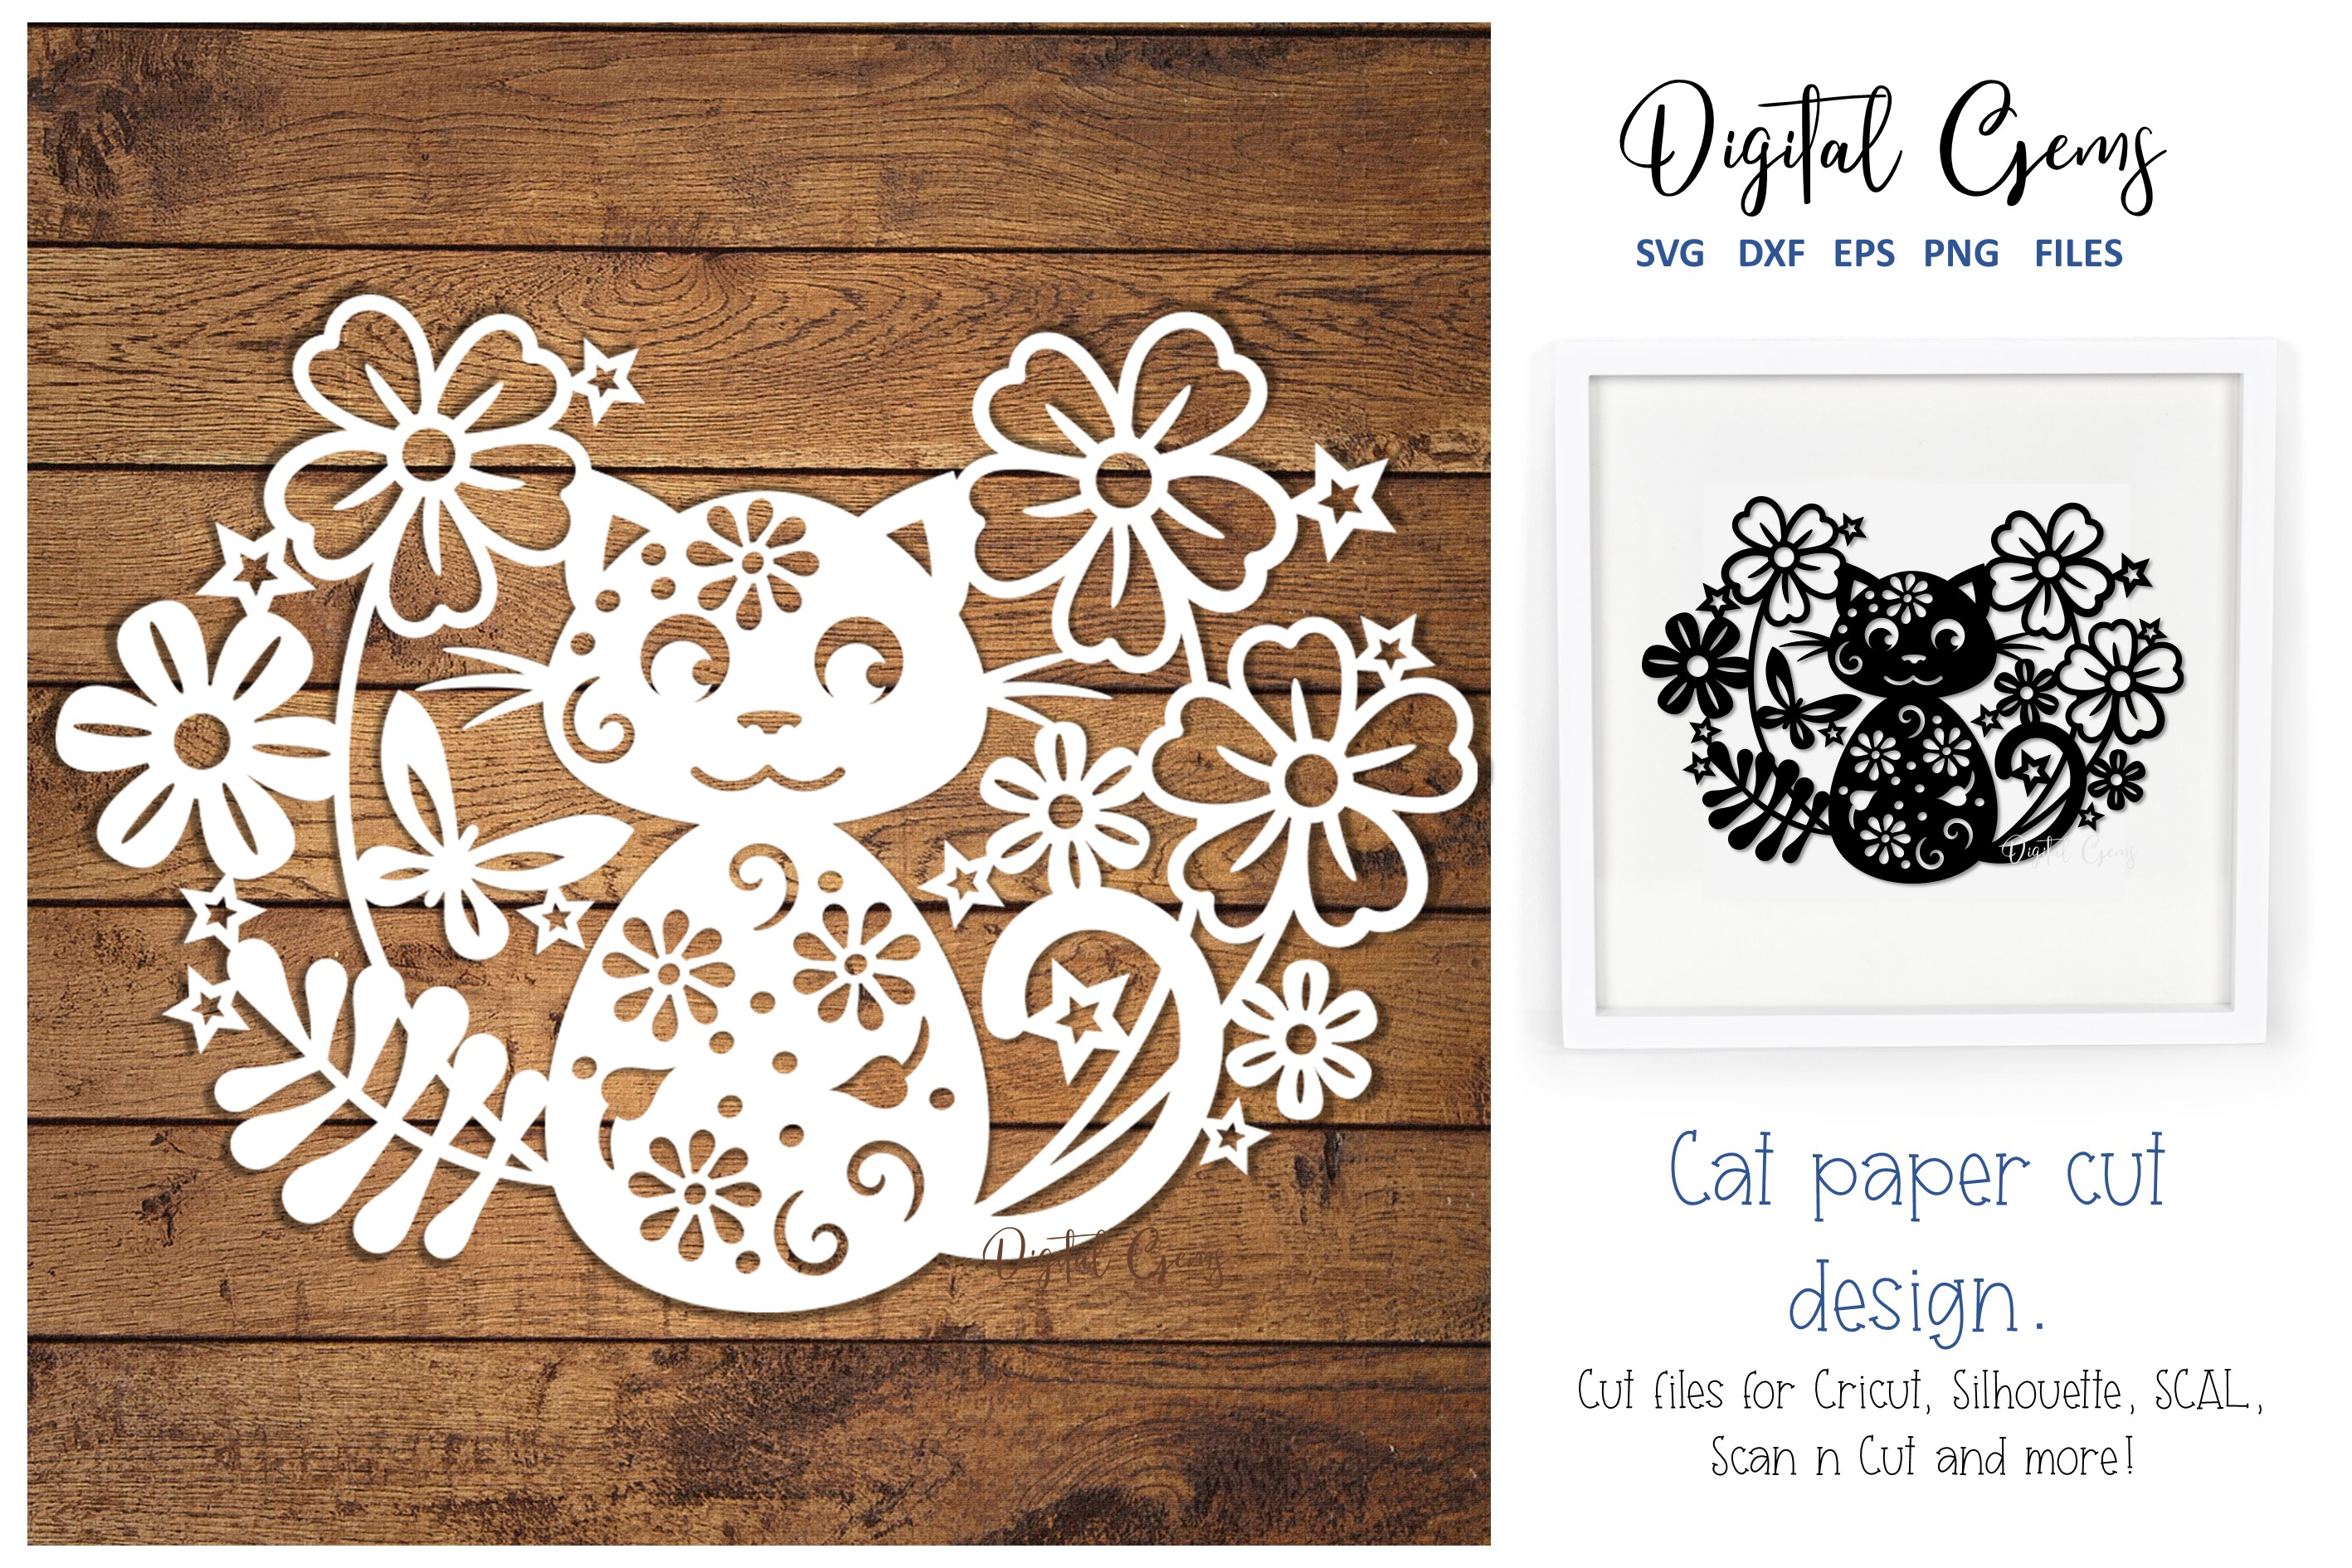 Cat Papercut Design Graphic By Digital Gems Creative Fabrica